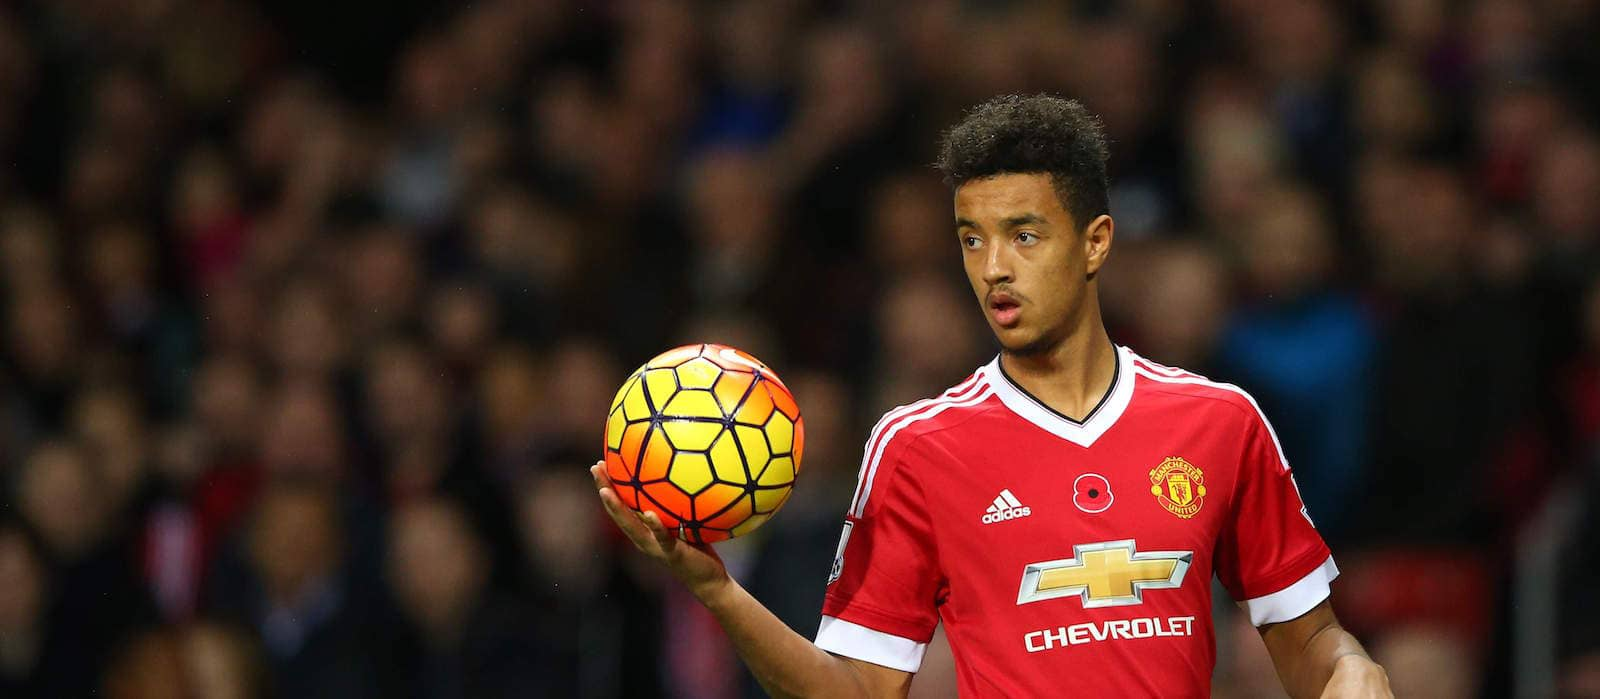 Cameron Borthwick-Jackson returns from unsuccessful Leeds United loan move